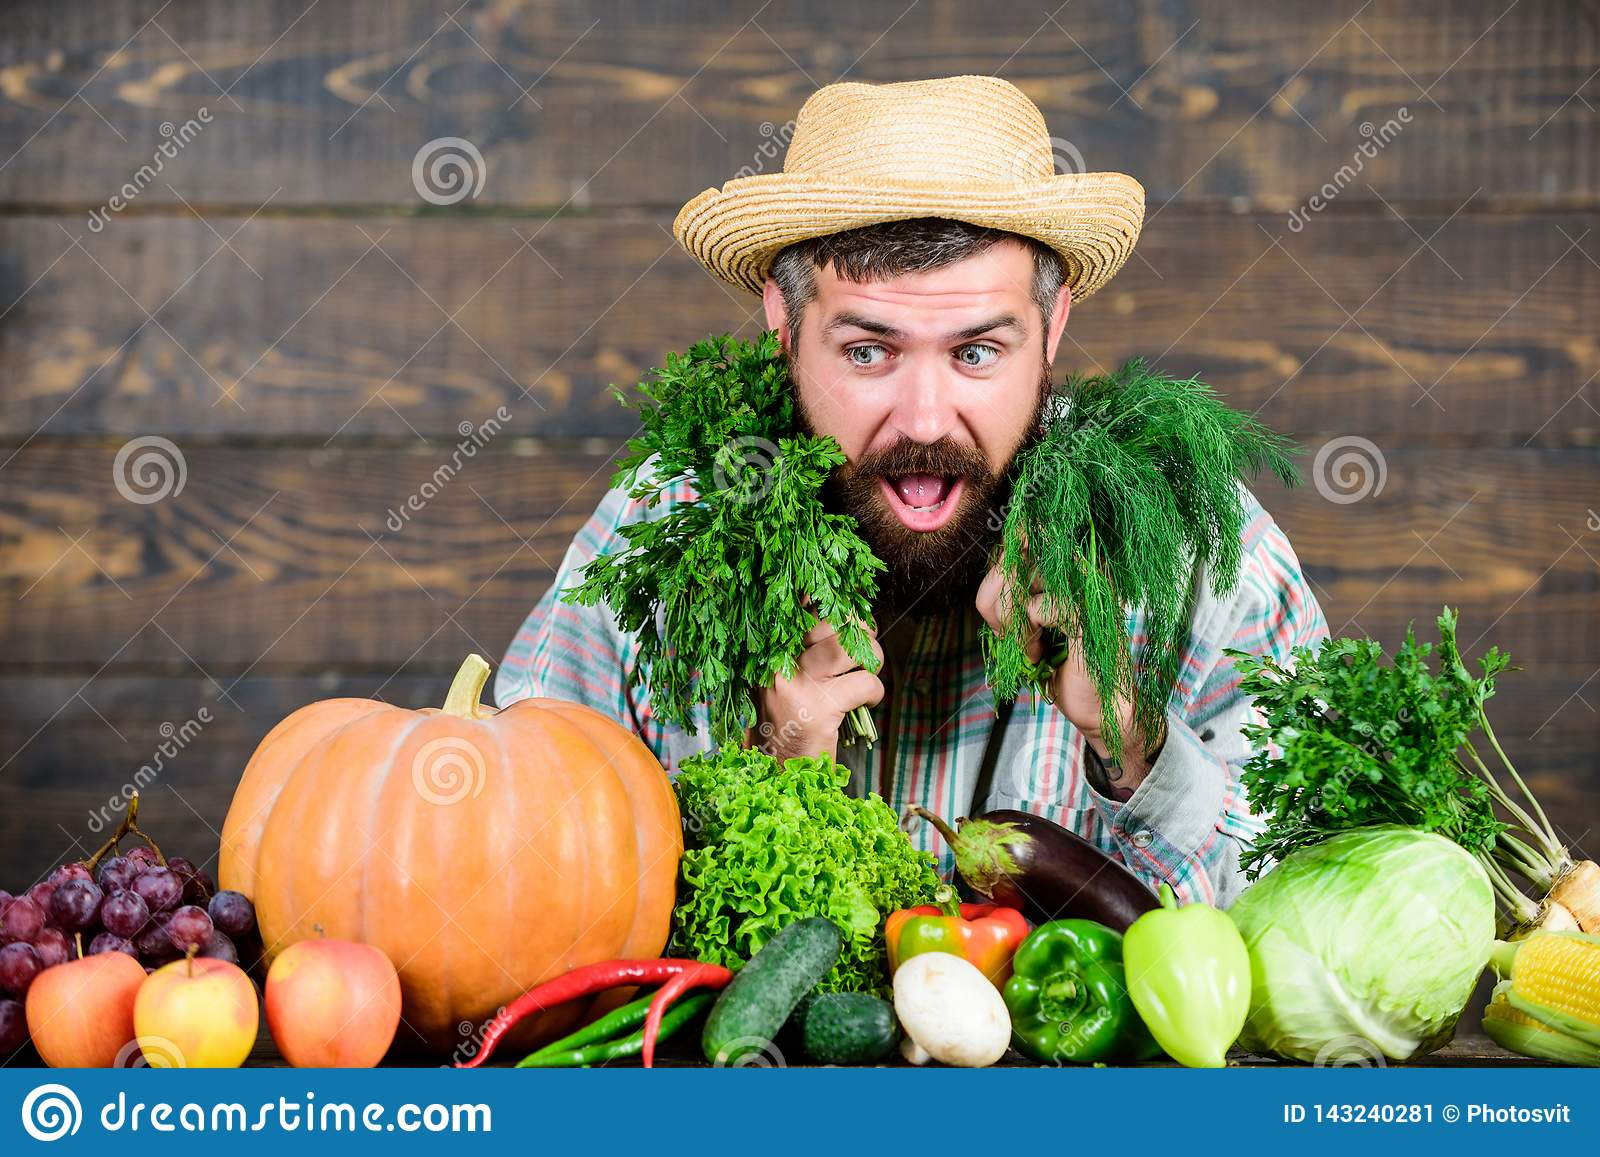 Lush healthy beard. bearded mature farmer. harvest festival. man chef with rich autumn crop. organic and natural food